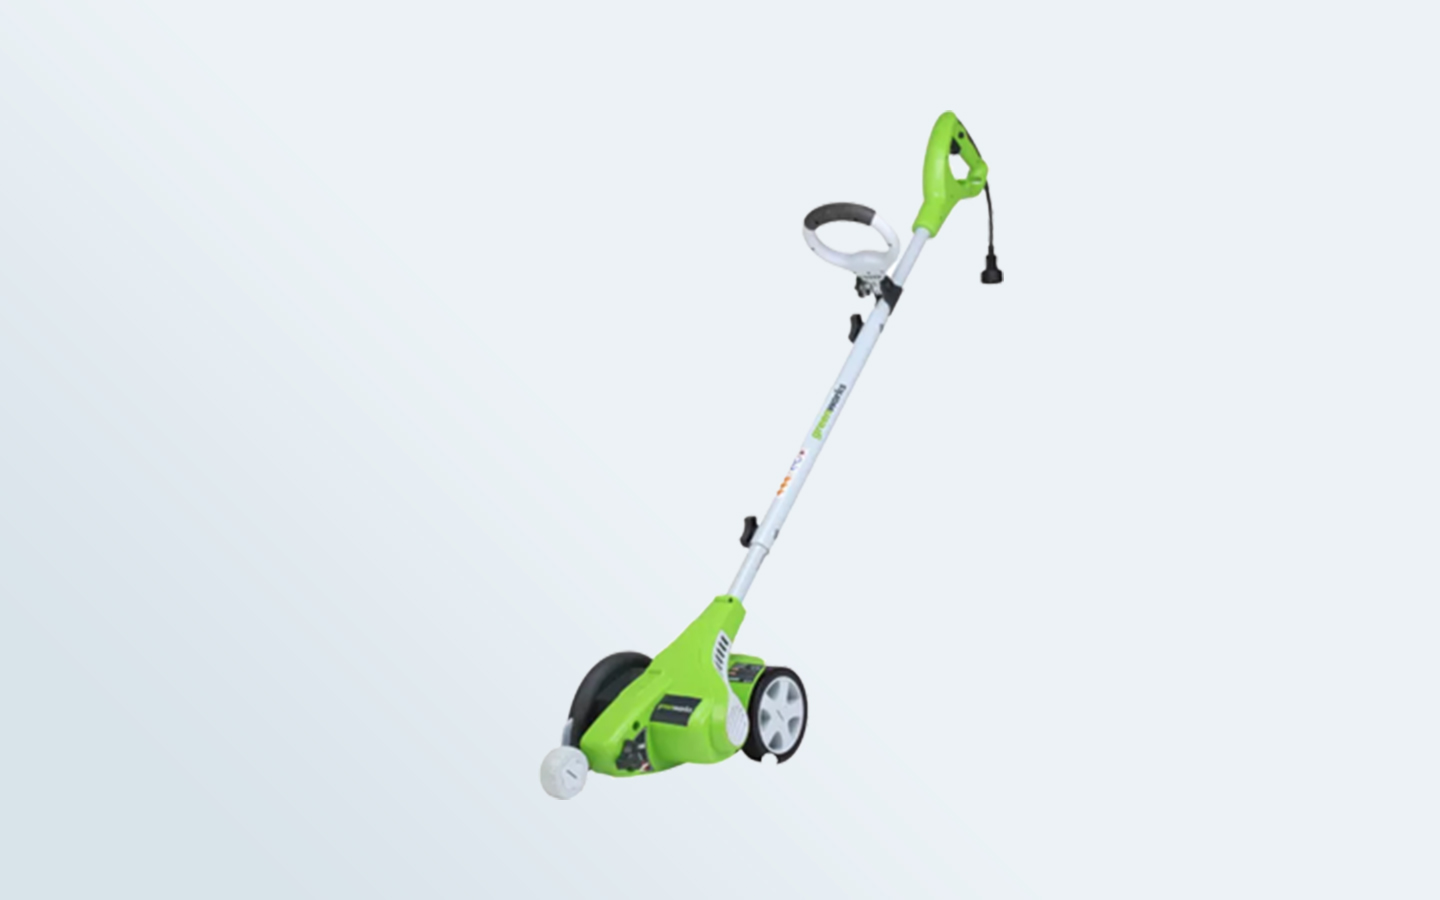 Best Lawn Edgers of 2019 - Gas and Electric Edger Reviews